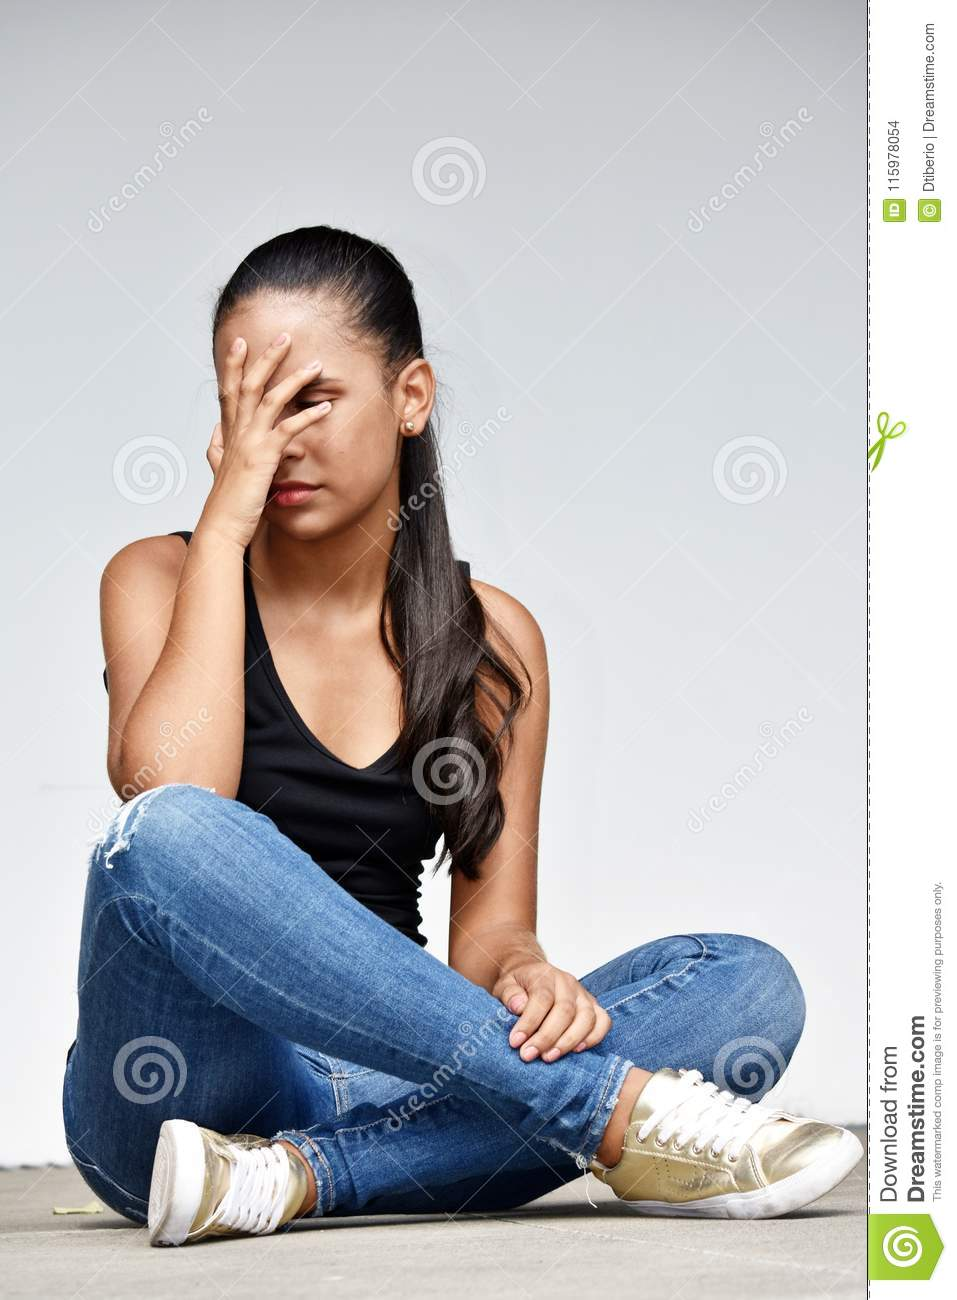 Teenage Girl Student And Anxiety Wearing Bluejeans